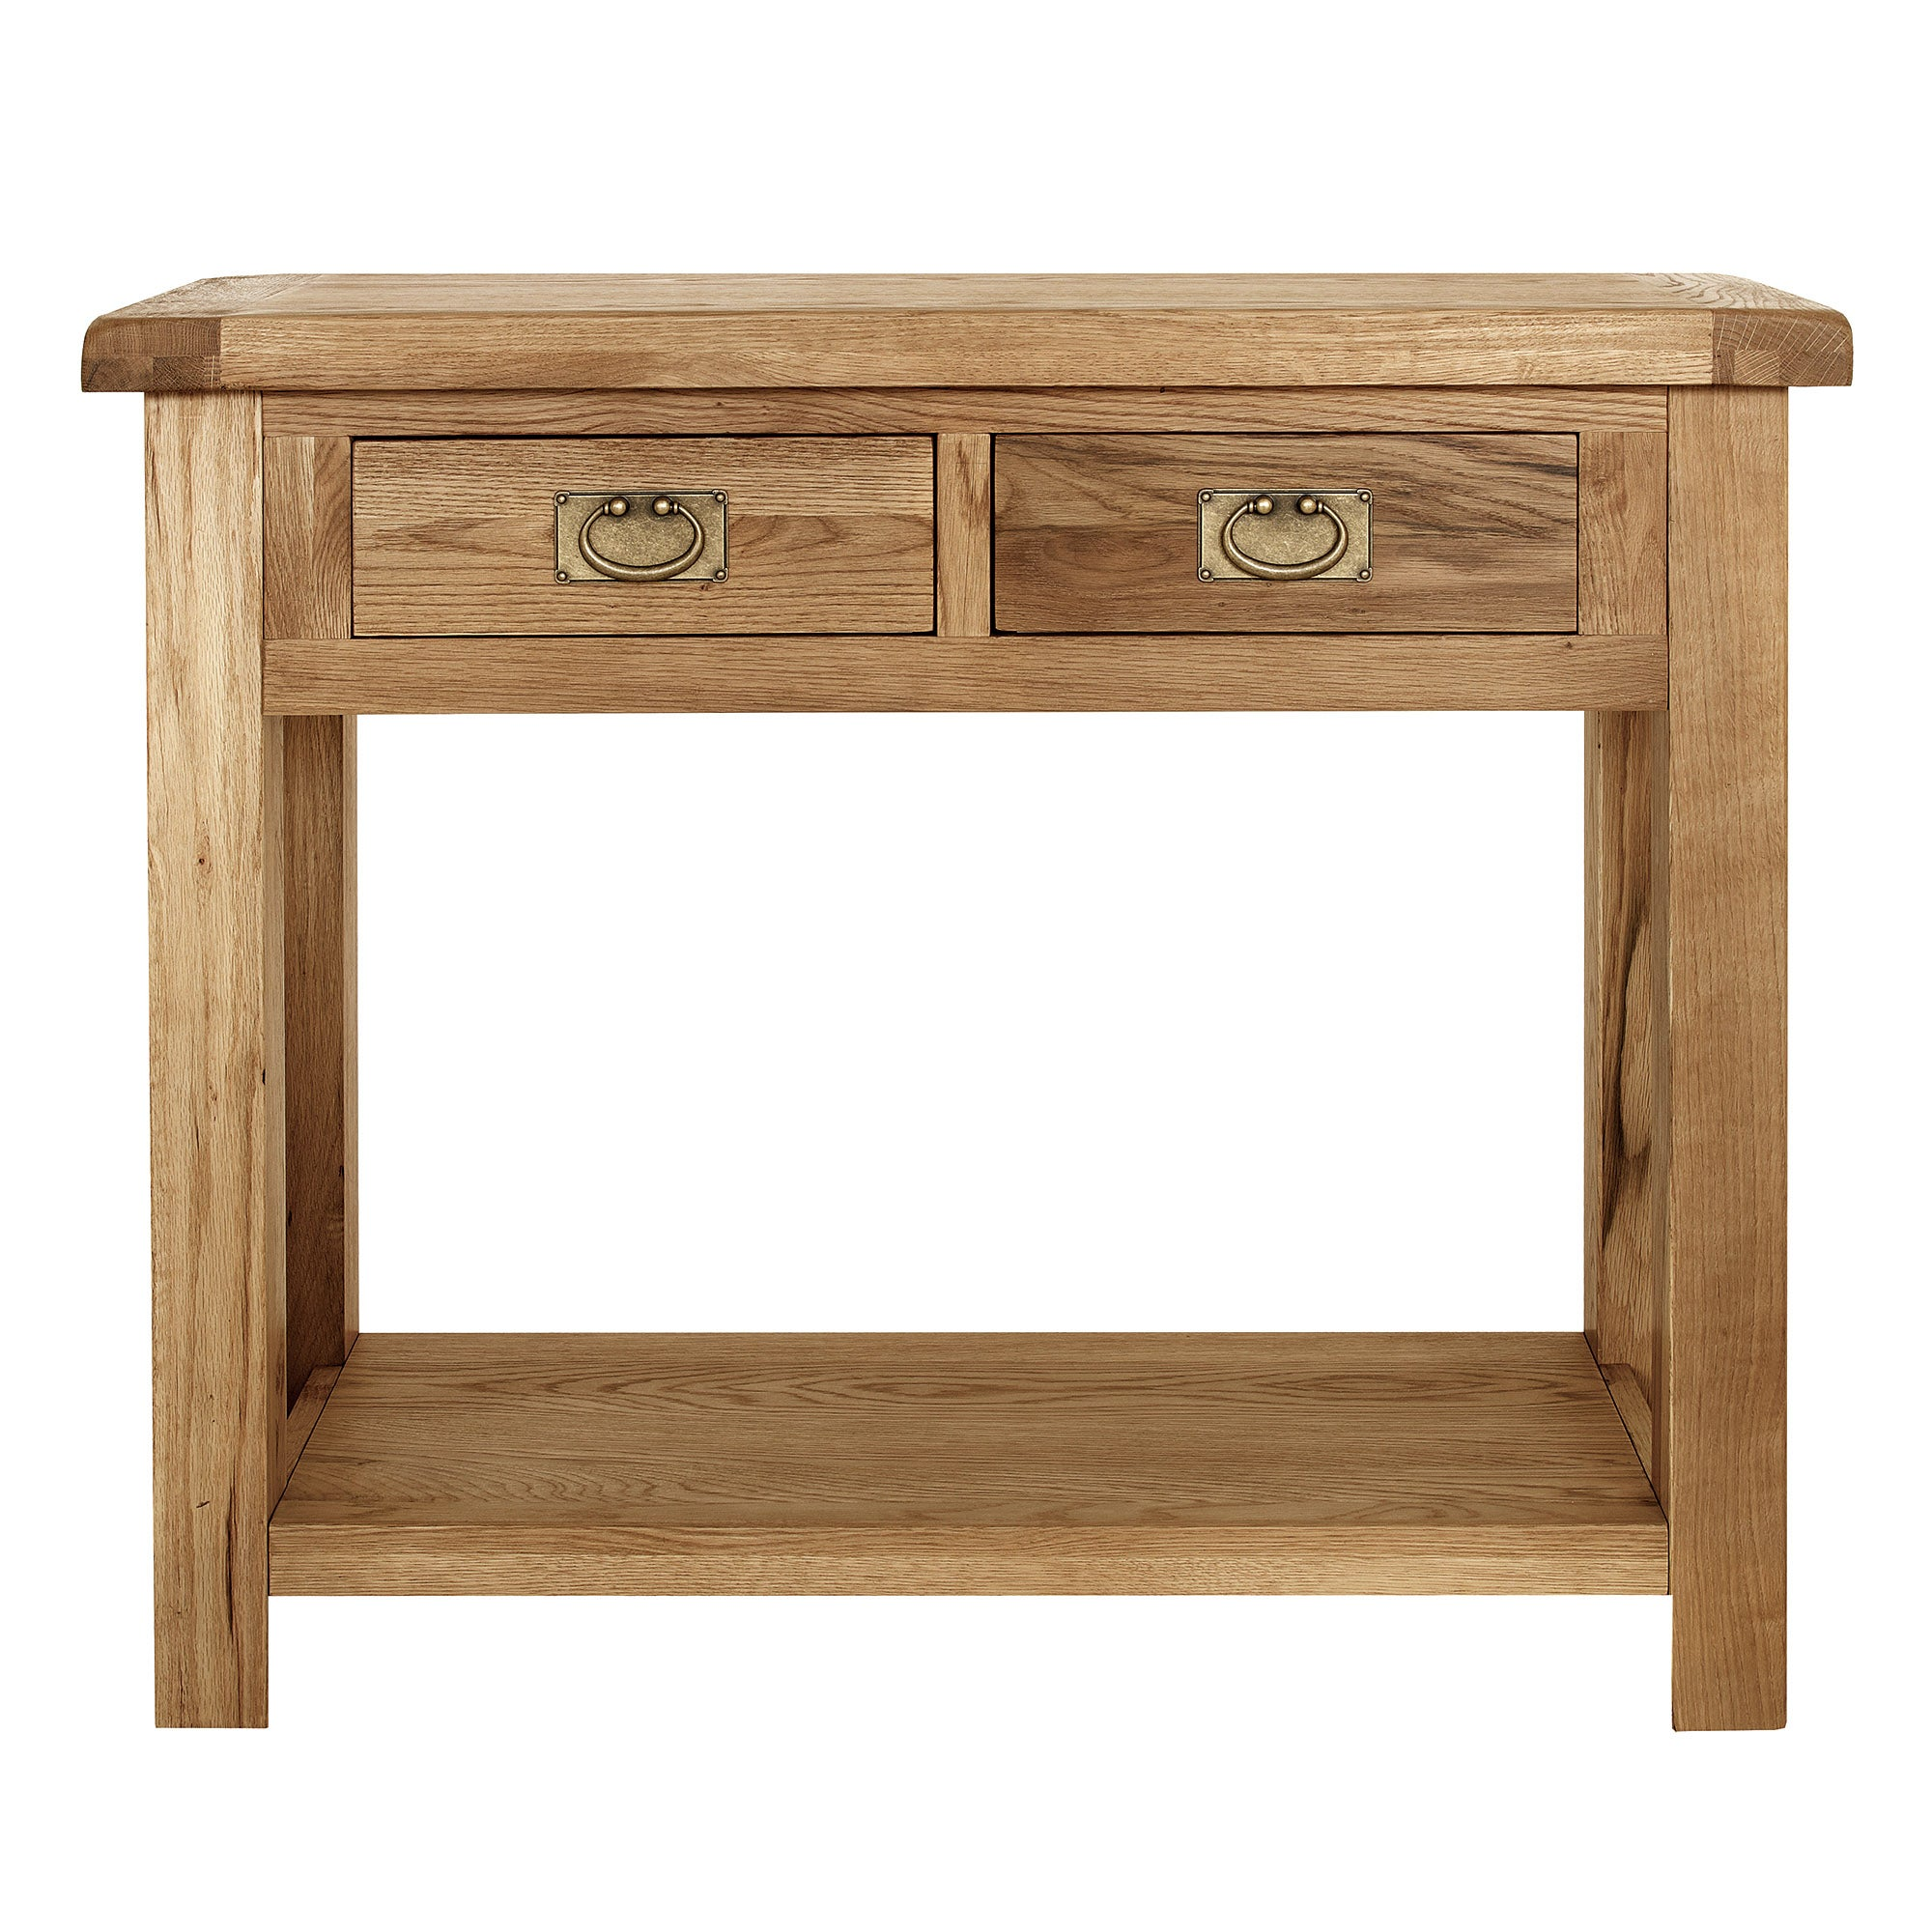 Aylesbury Oak Console Table